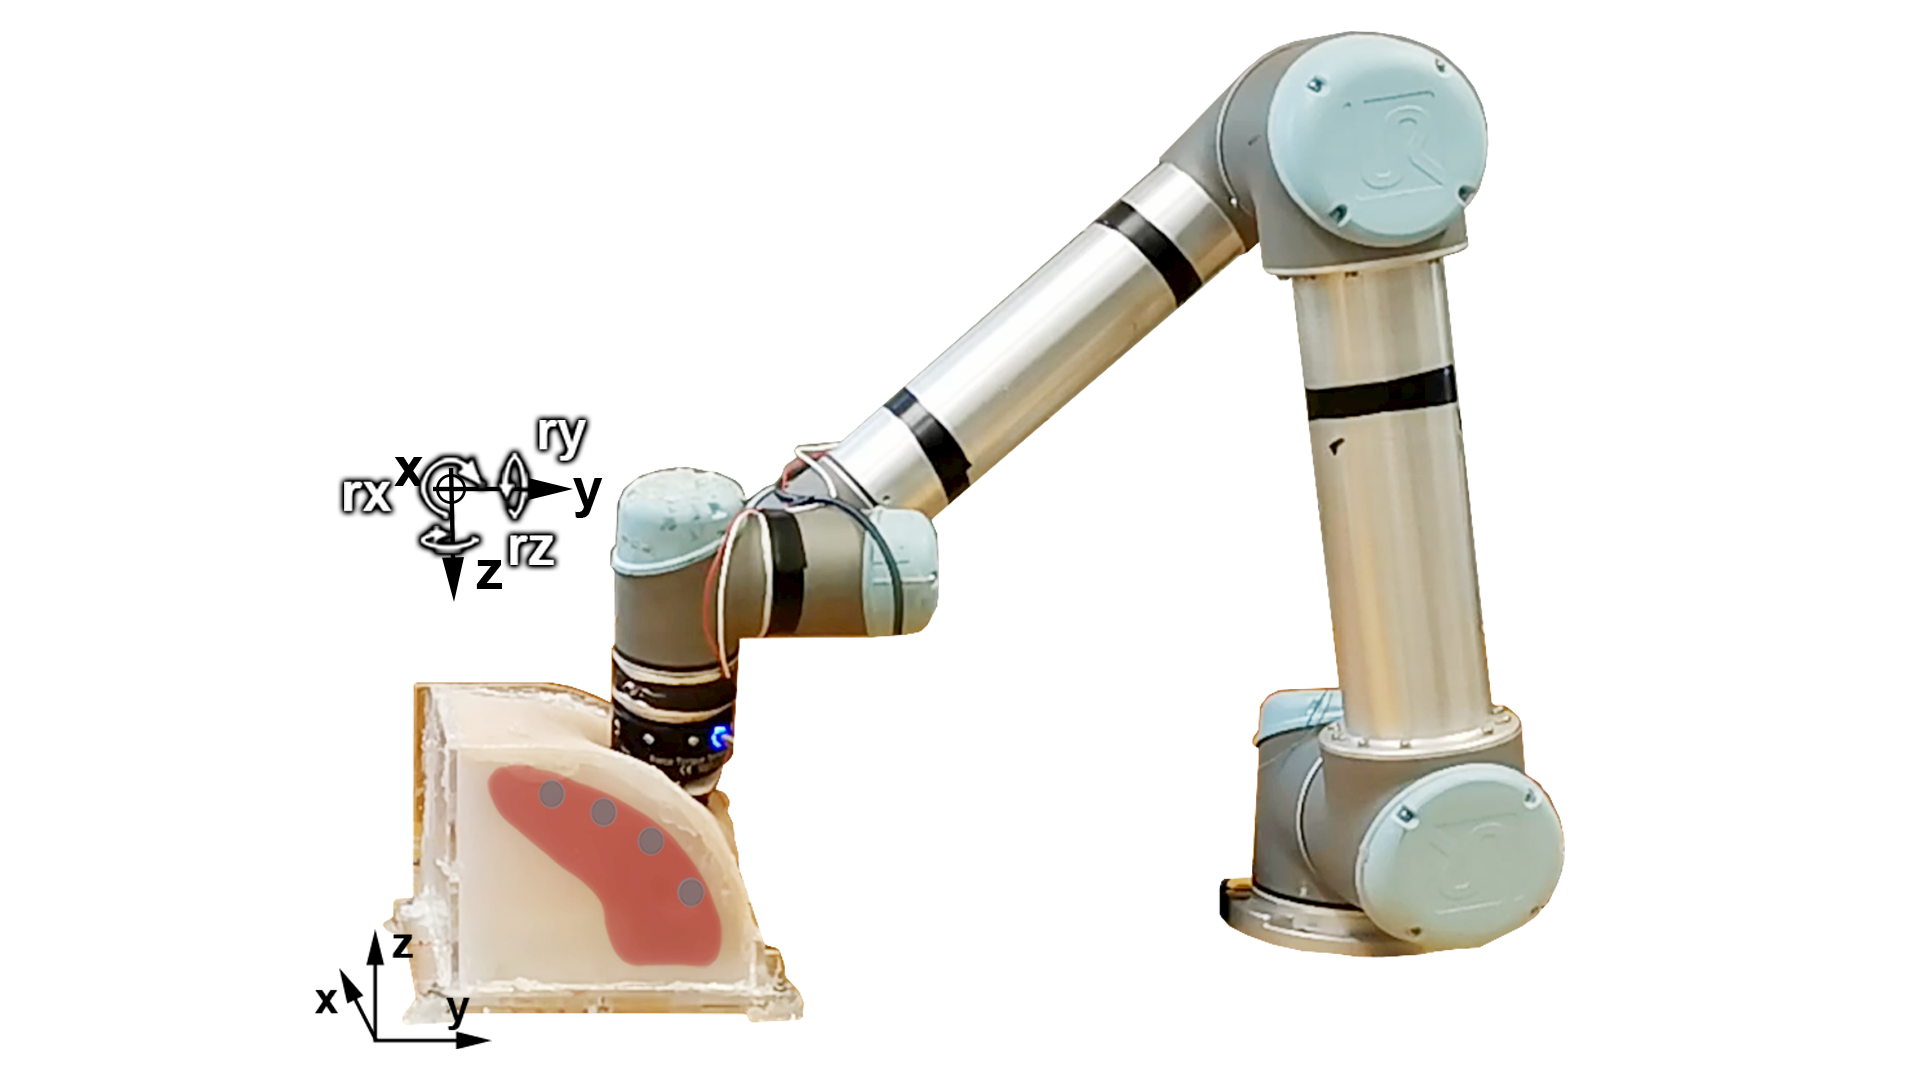 — A Soft Robotic Approach to Reinforce Medical Palpation Training